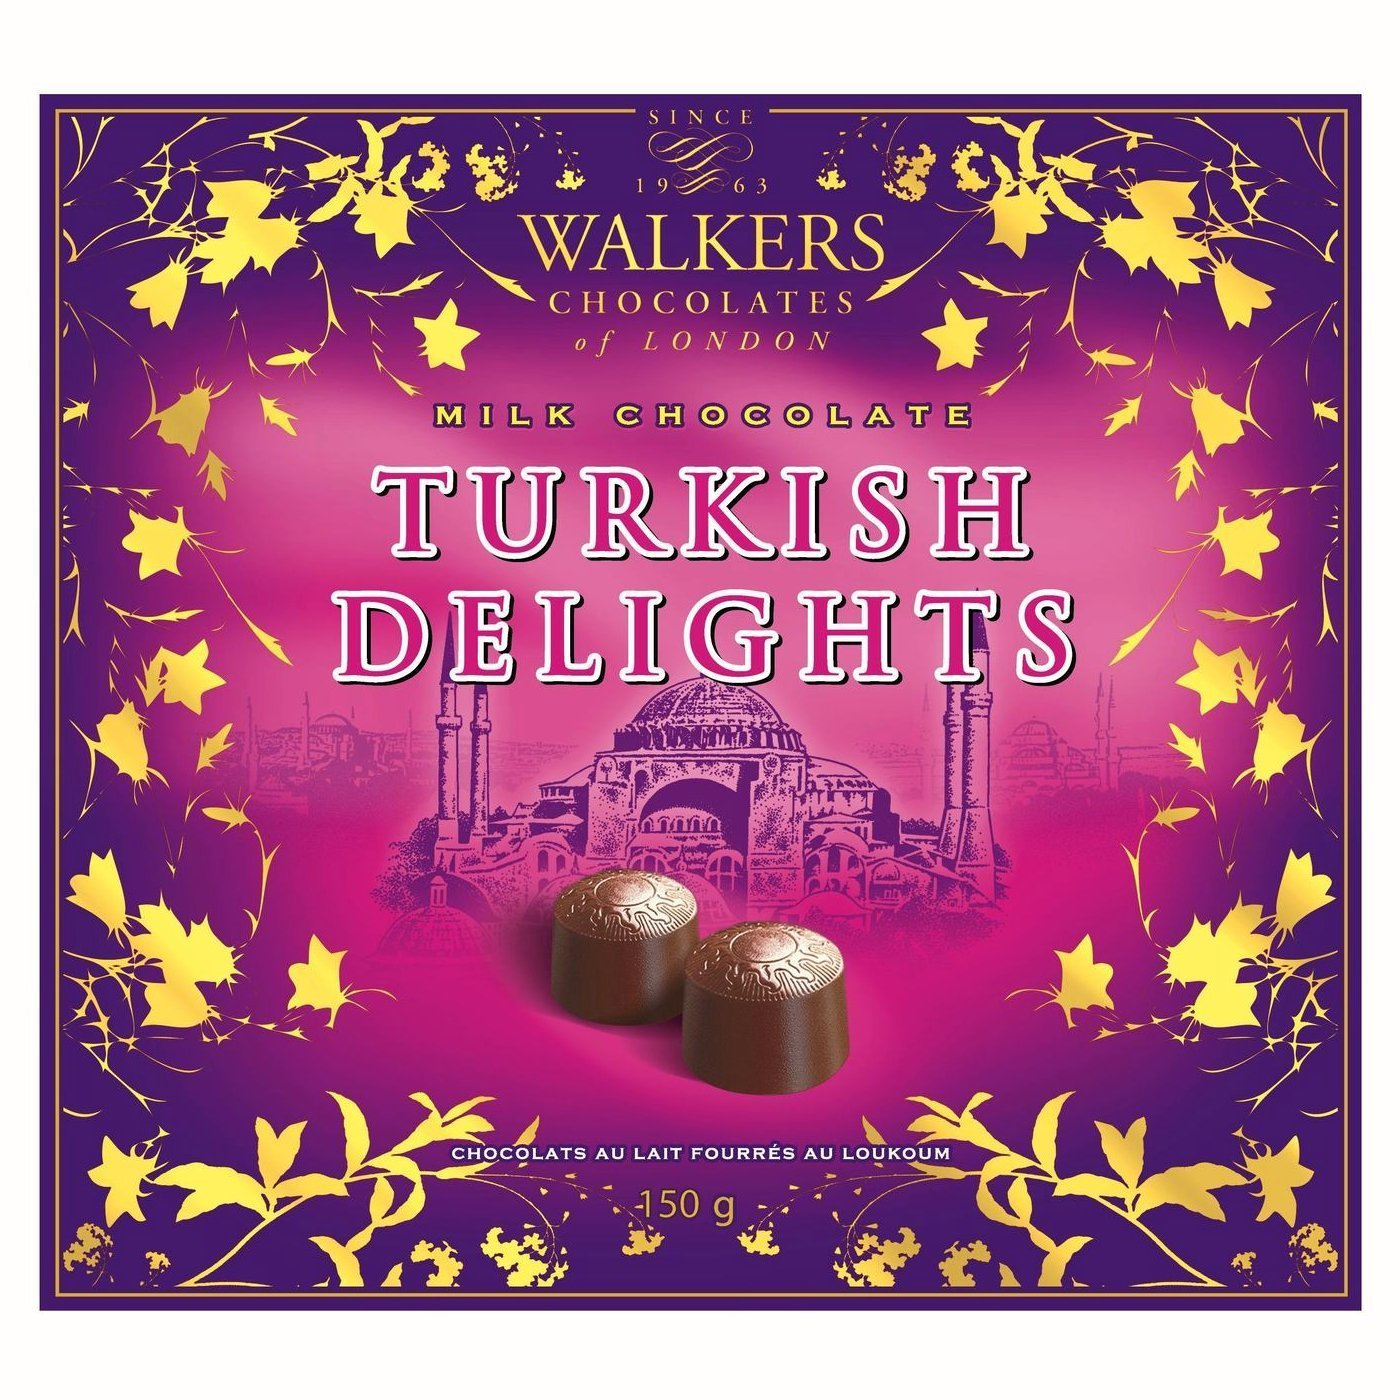 Walkers of London Milk Chocolate Turkish Delights, 150g